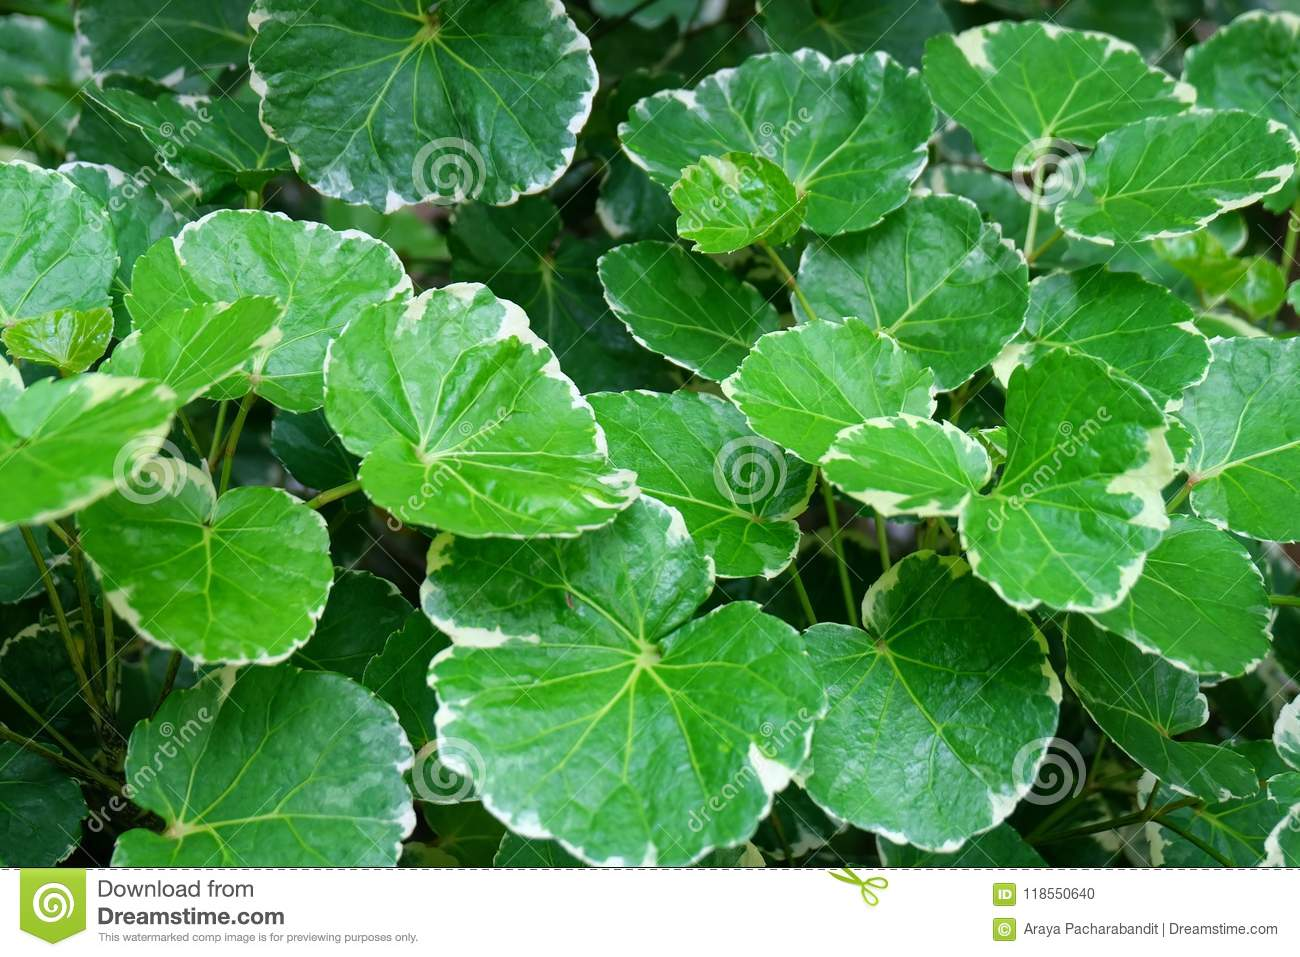 Background of Beautiful Fresh Polyscias Leaves in A Garden